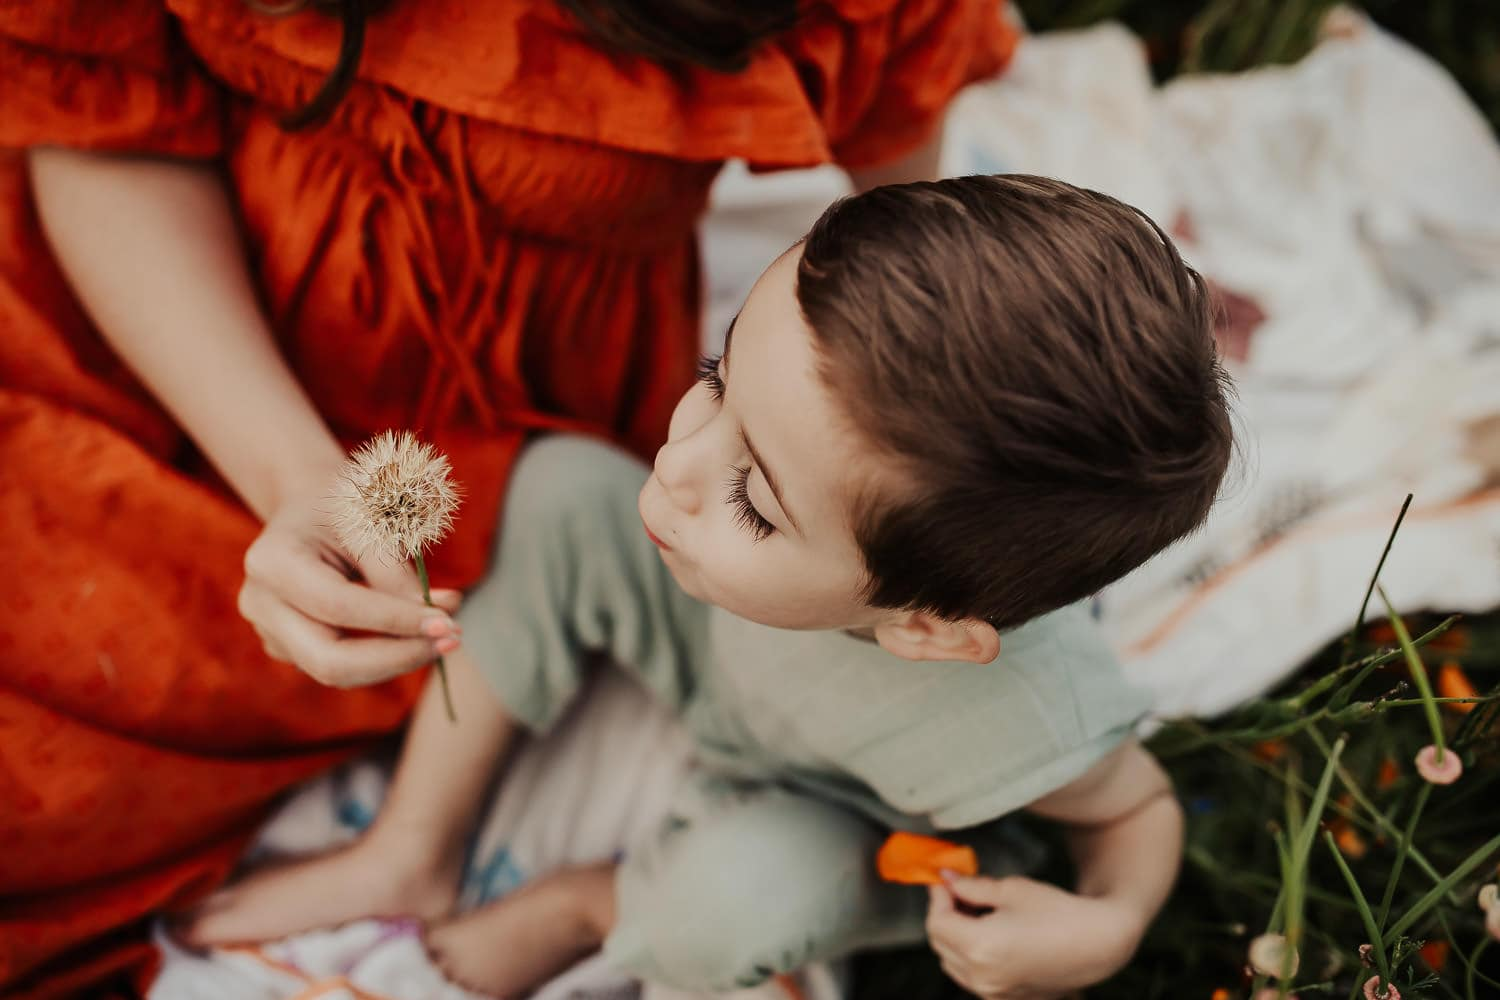 Little boy blowing on a dandelion flower with his mom